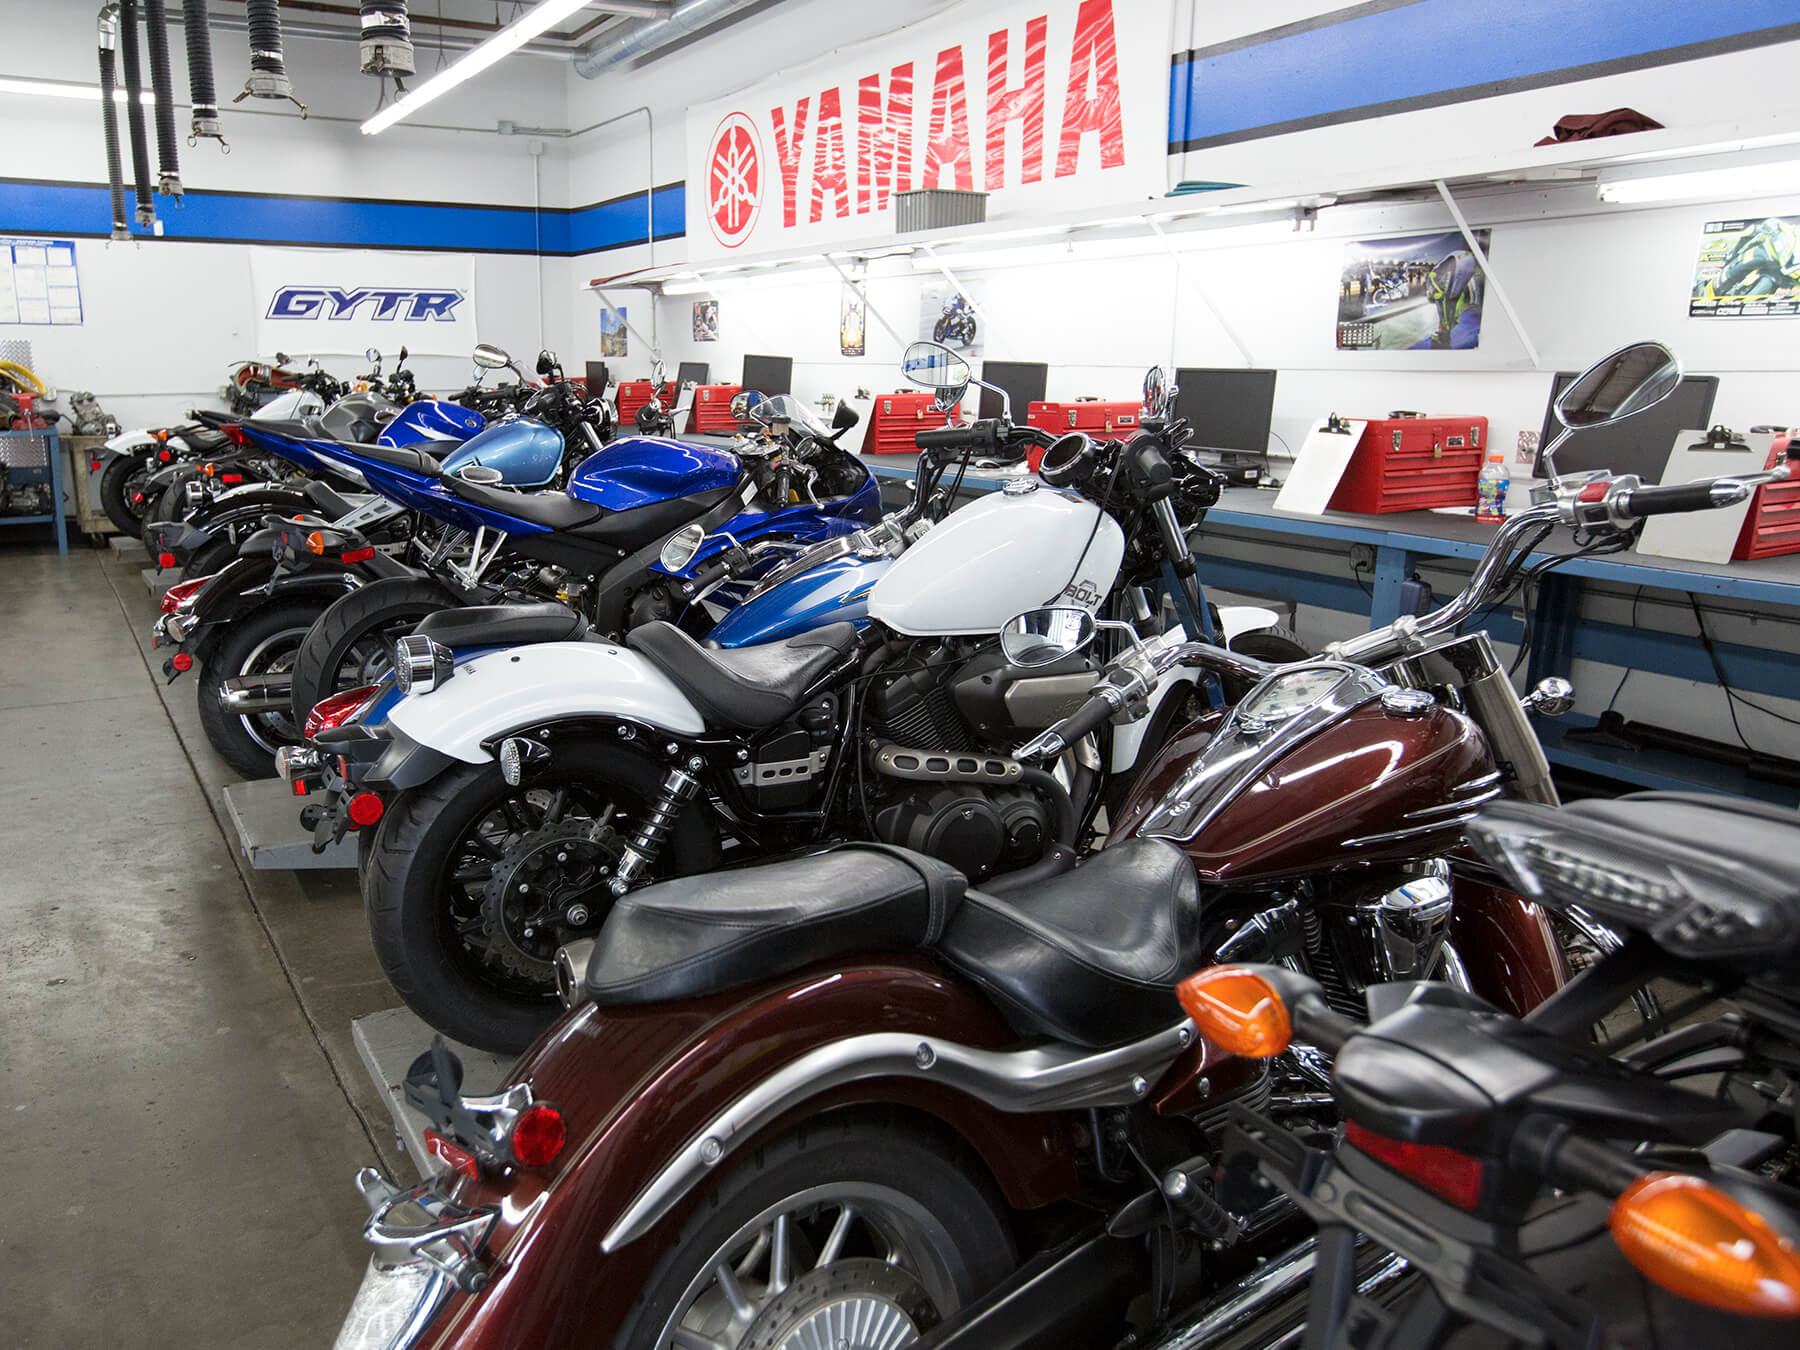 Wideshot of Yamaha motorcycles